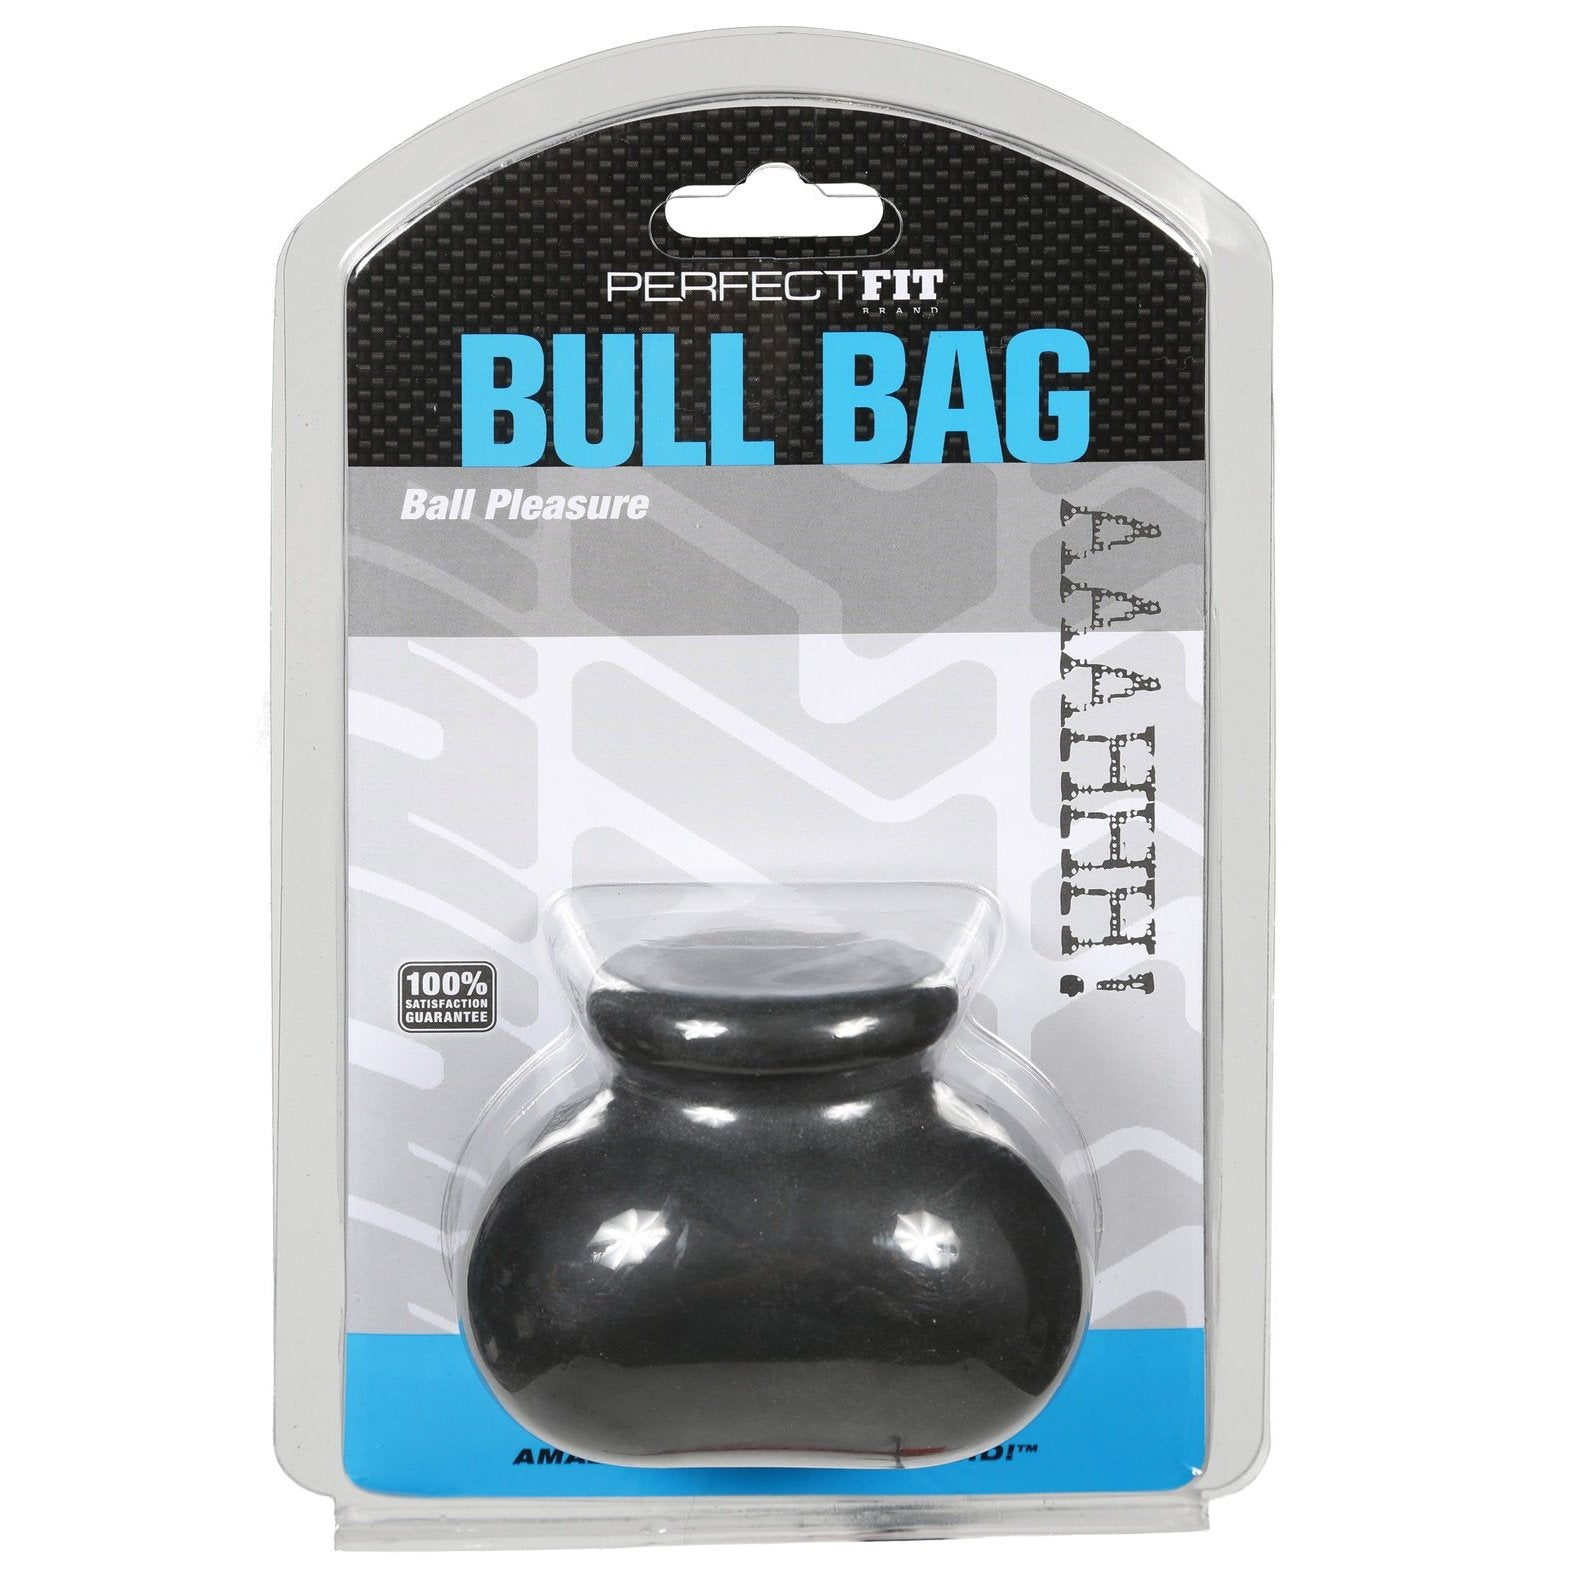 "Perfect Fit Bull Bag 3/4"" Ball Stretcher - Gay Men's Sex Toys - Adam's Toy Box"